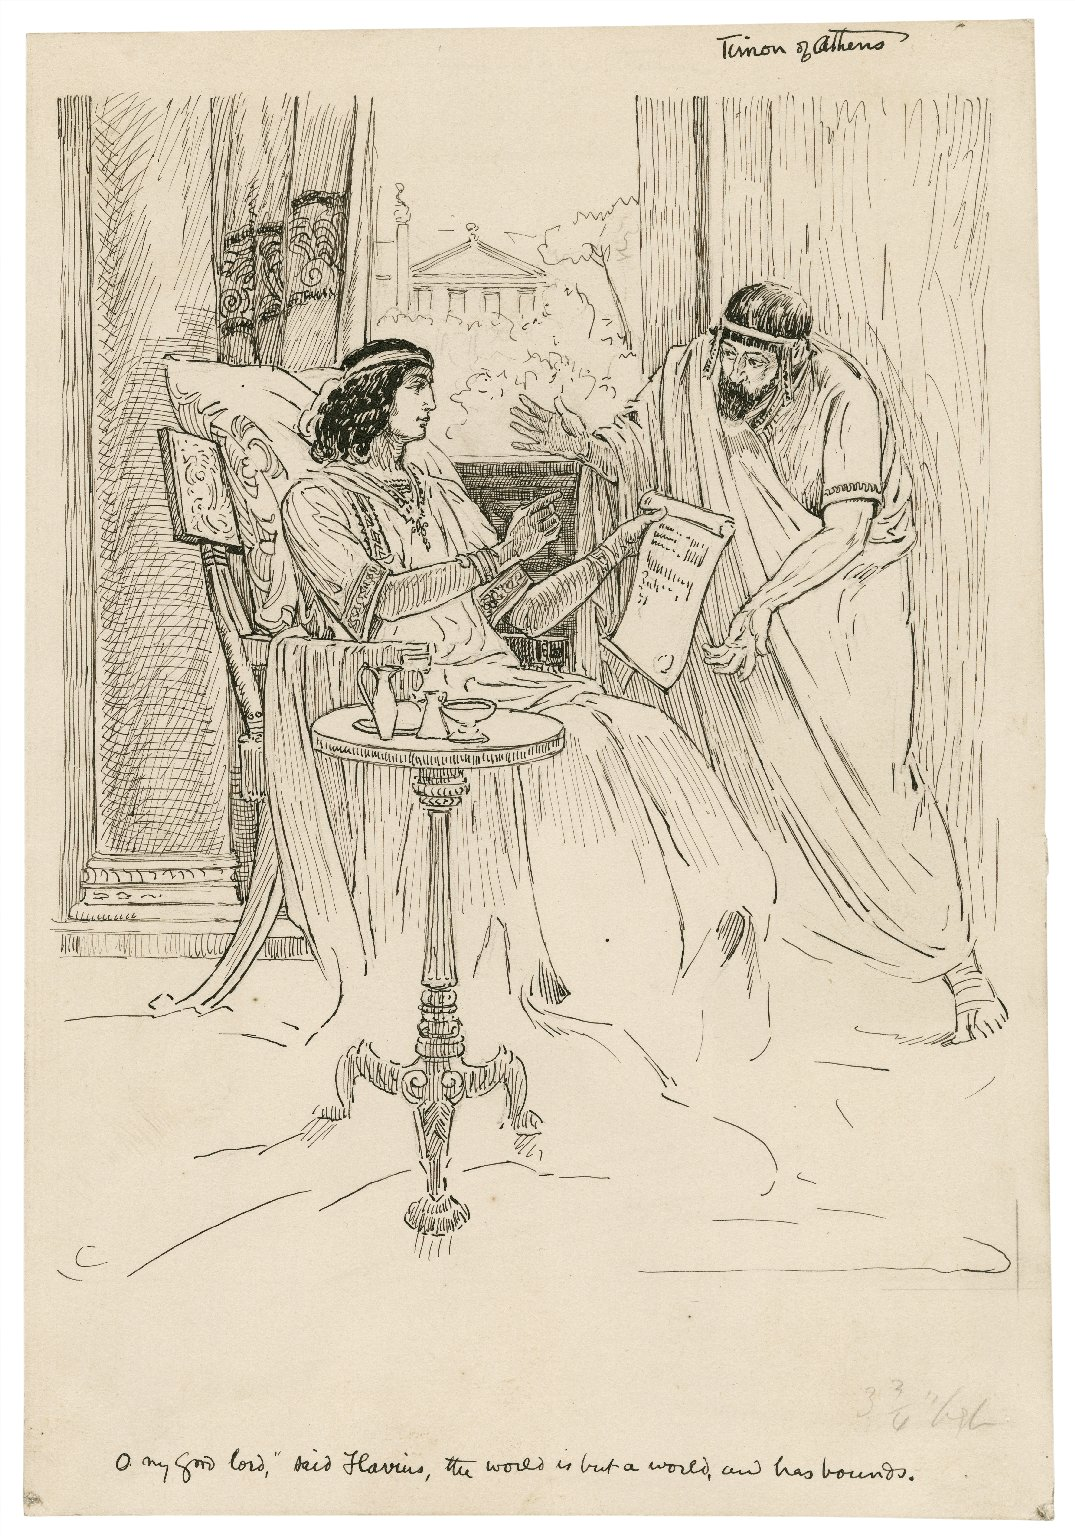 Timon of Athens. O my good Lord, said Flavius, the world is but a world, and has bounds [graphic] / [Louis Rhead].